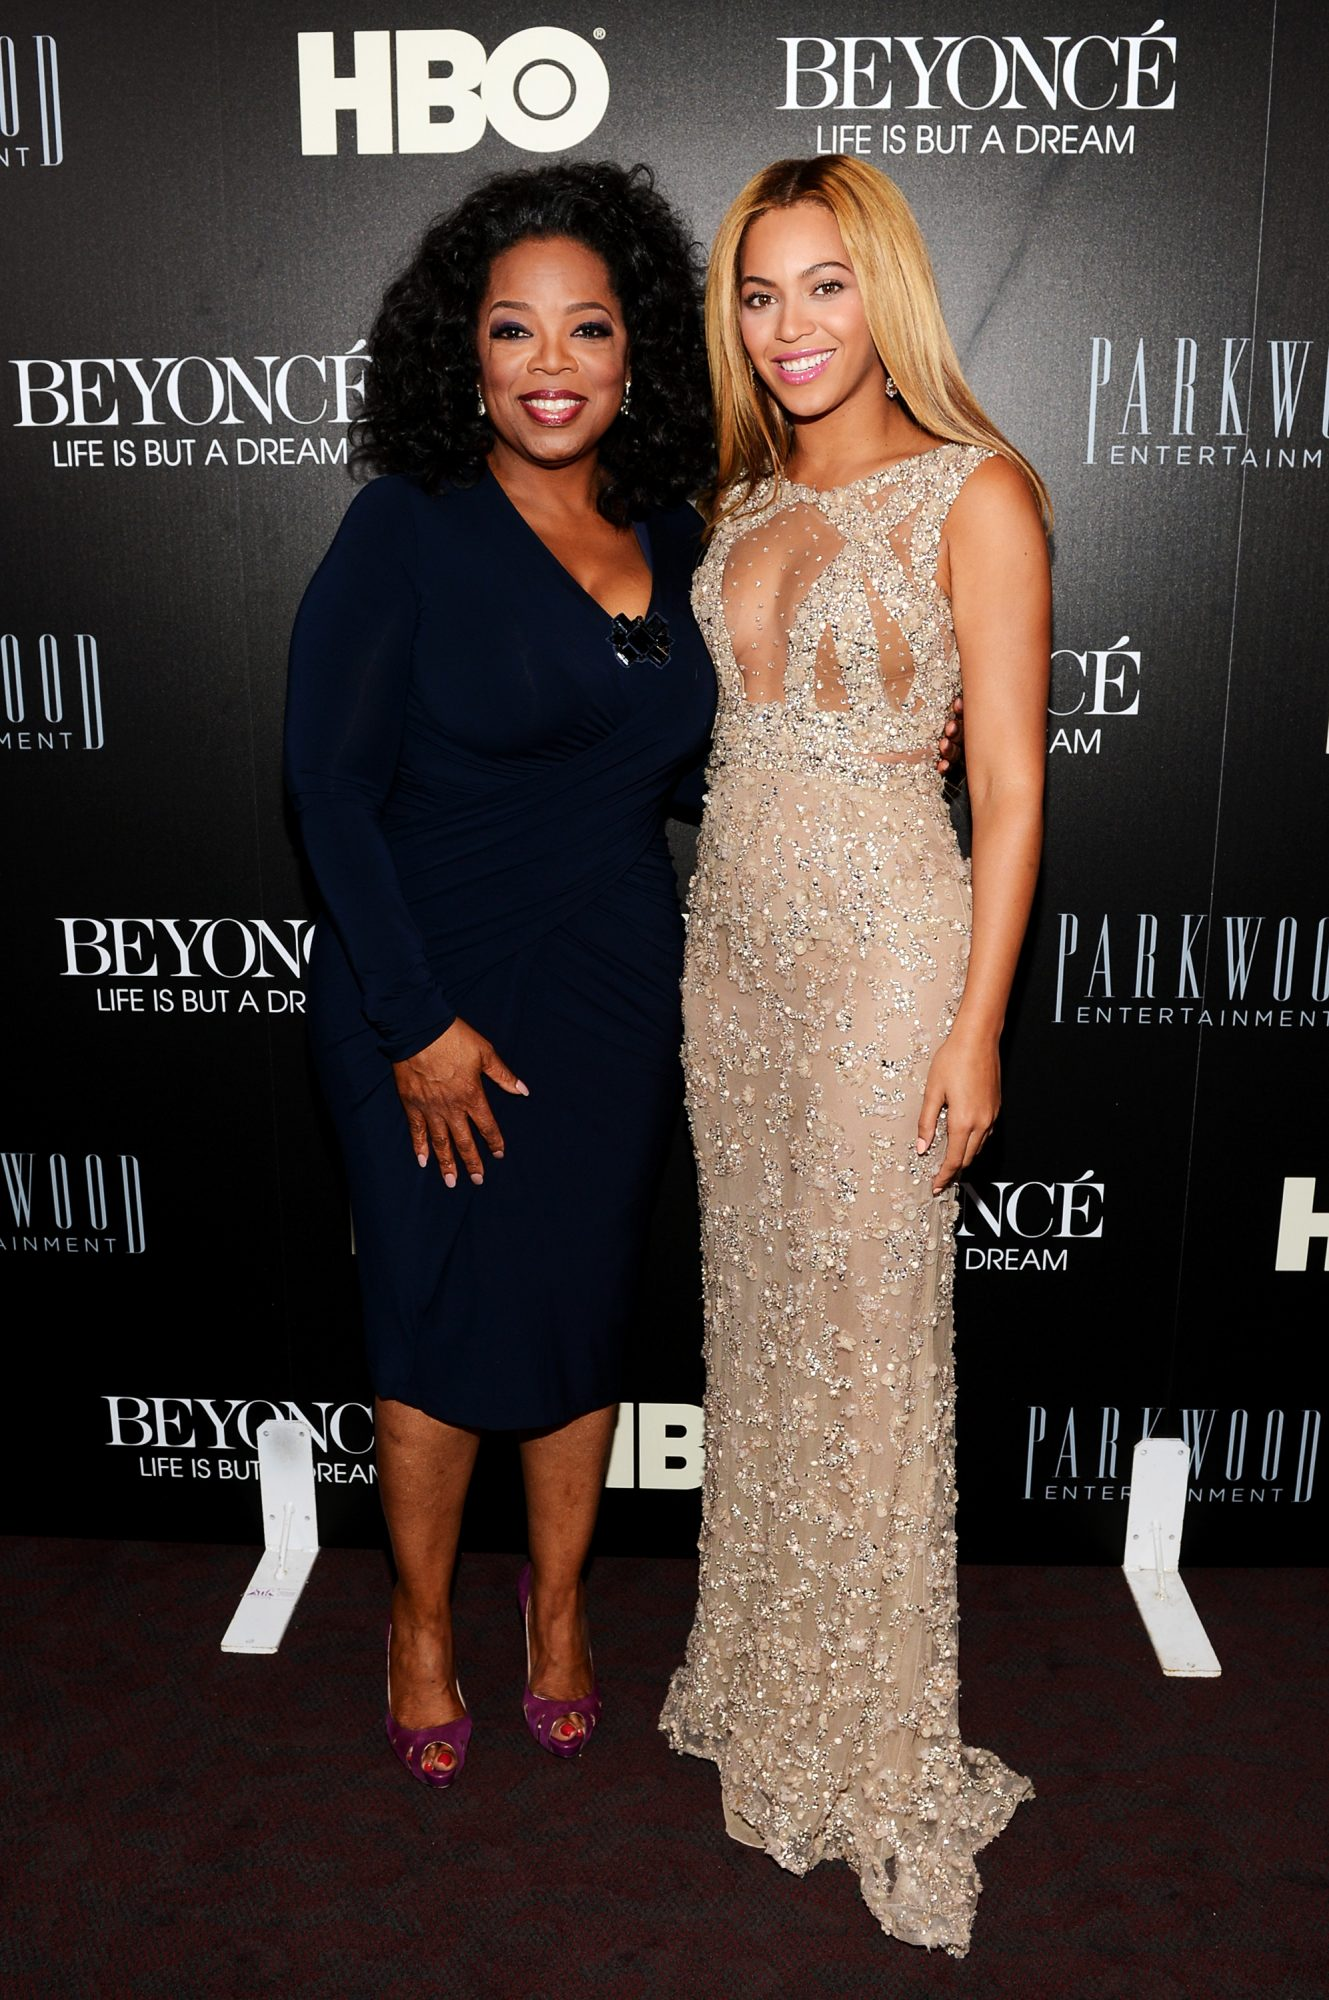 We Have Beyoncé to Thank for Showing Us Oprah Winfrey in Pigtails